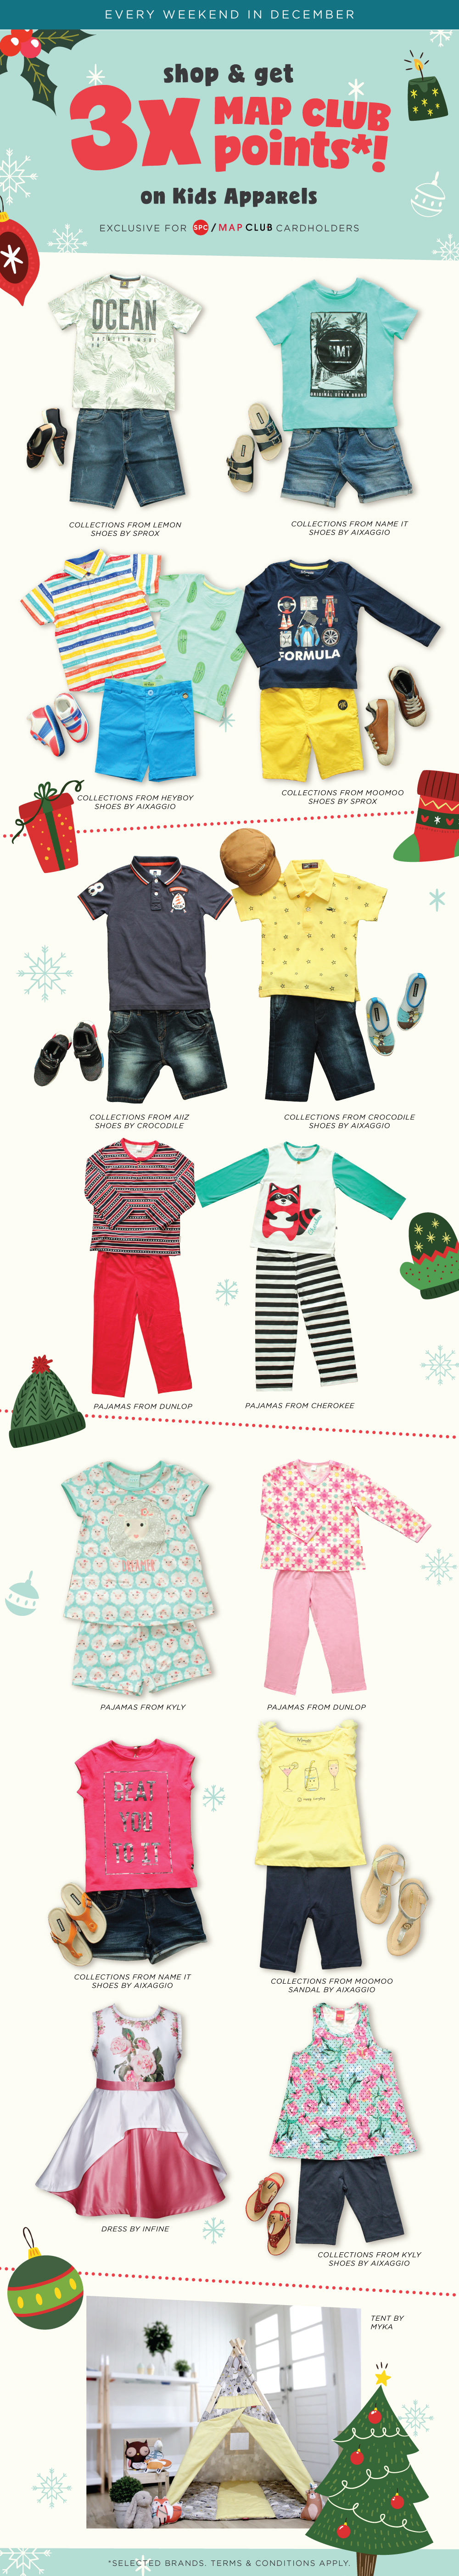 Landing-Page-SOGO-Kids-3x-Points-December-1